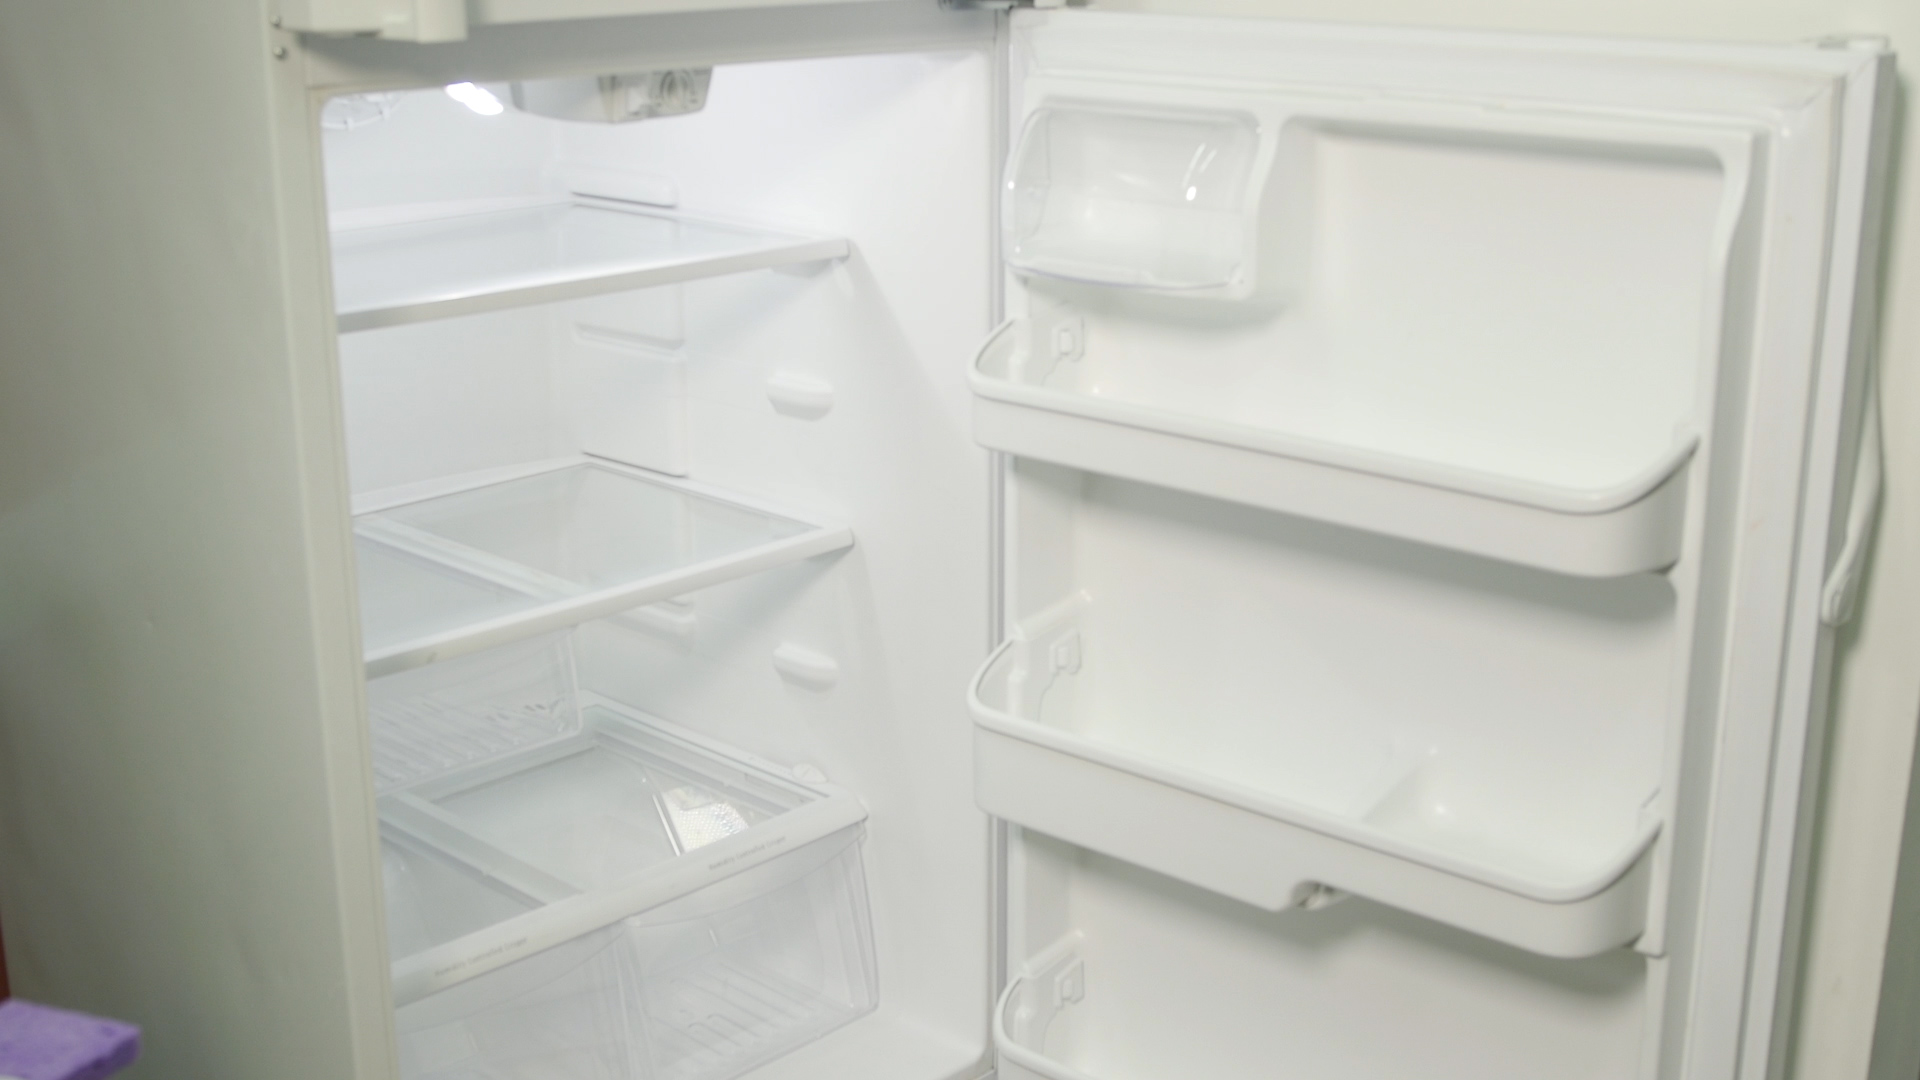 How To Get Rid Of Funky Refrigerator Smells Consumer Reports